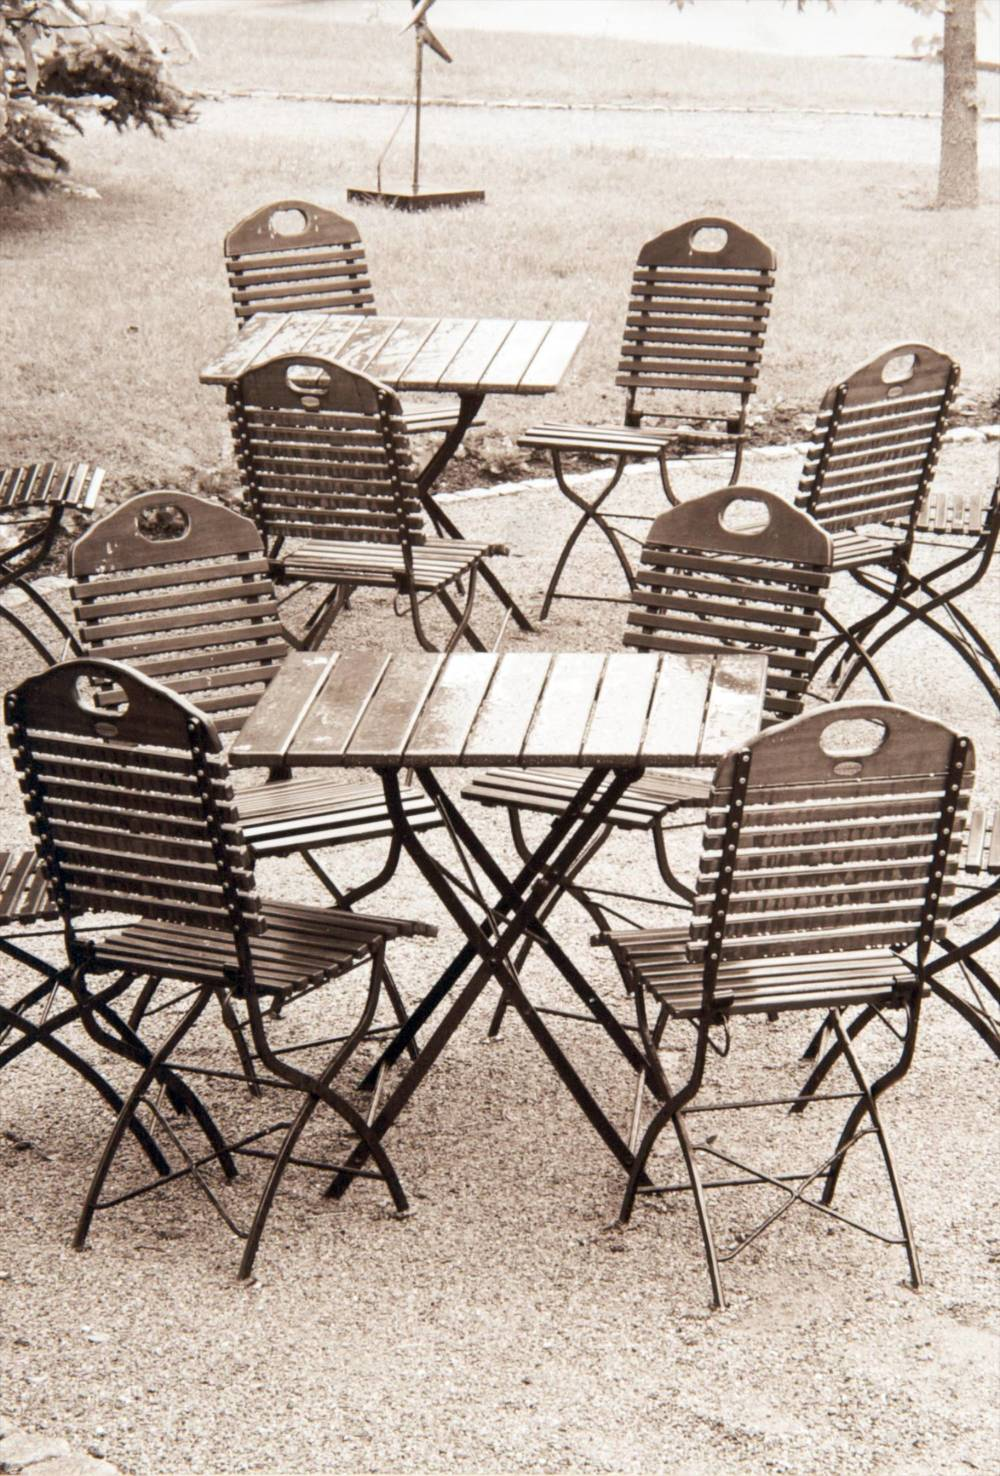 Chairs (Château de L'ile, France)